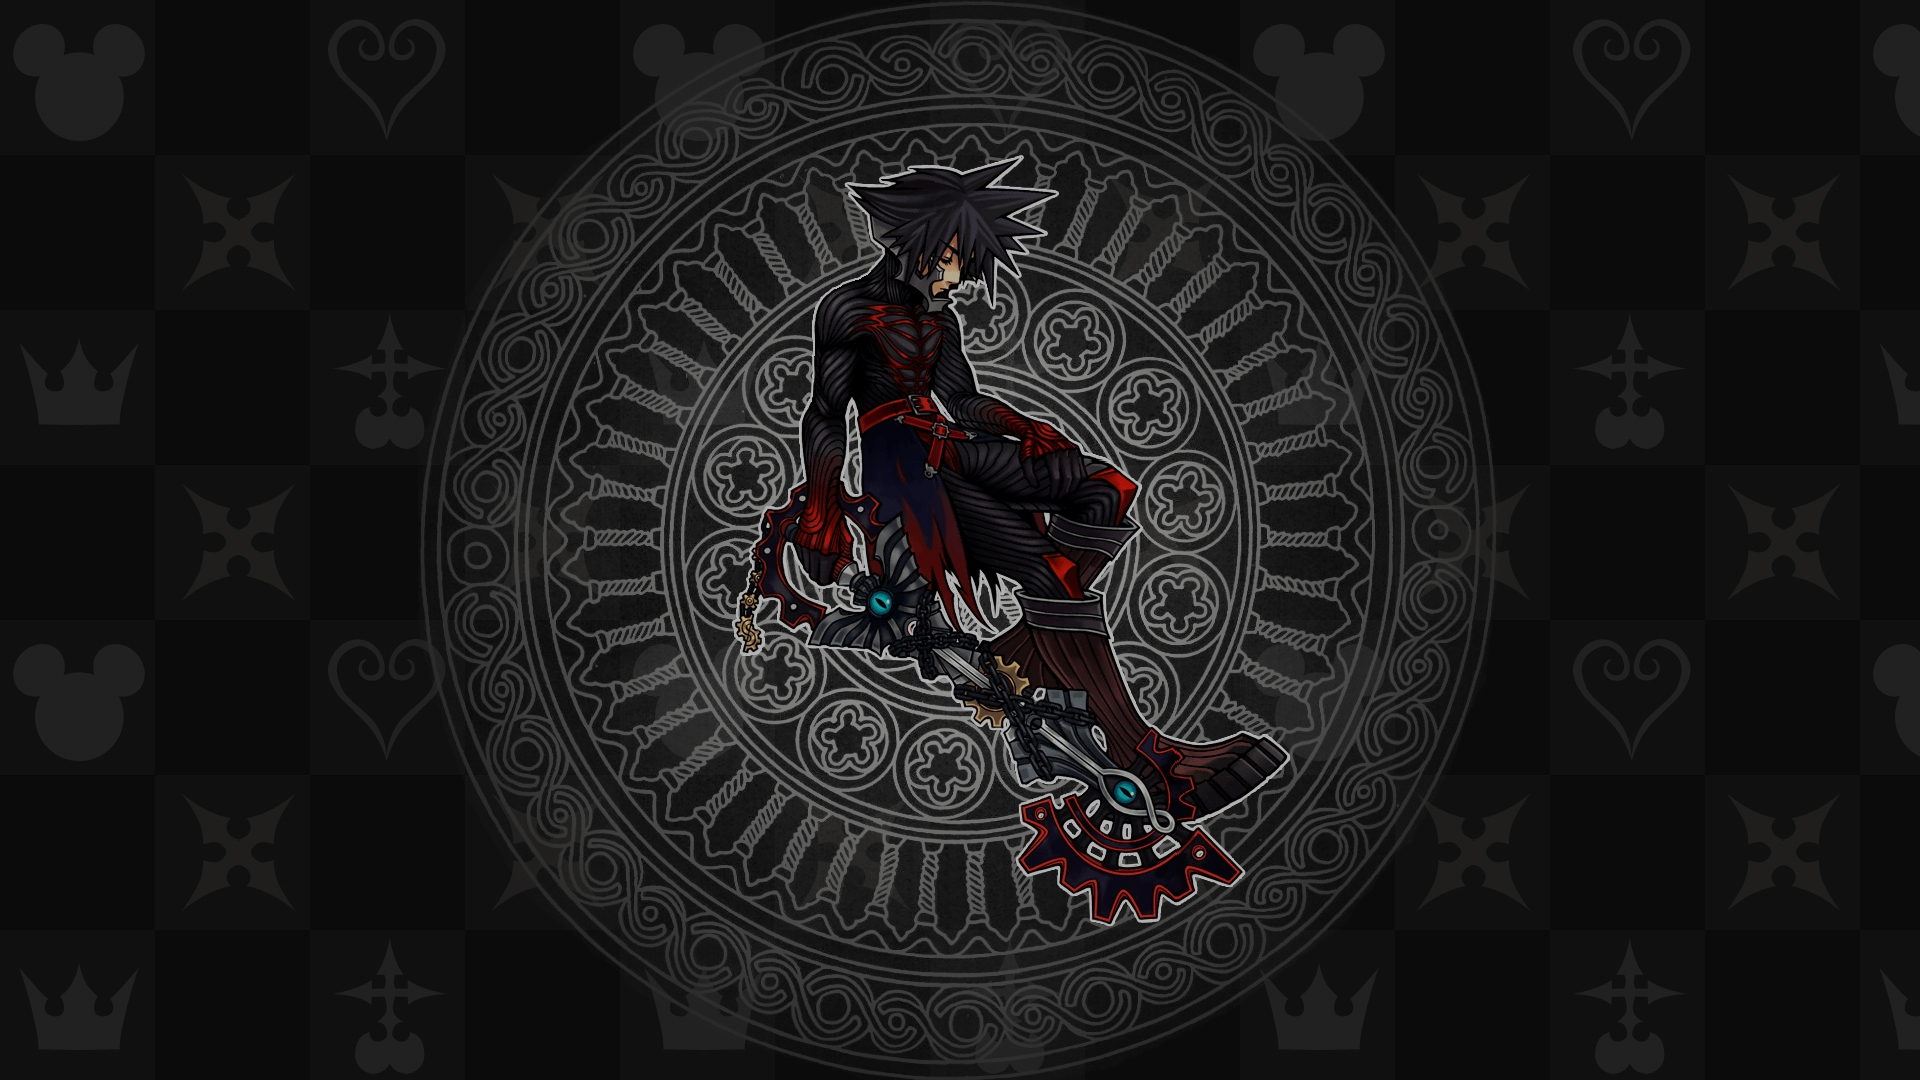 Kingdom Hearts Vanitas Wallpaper